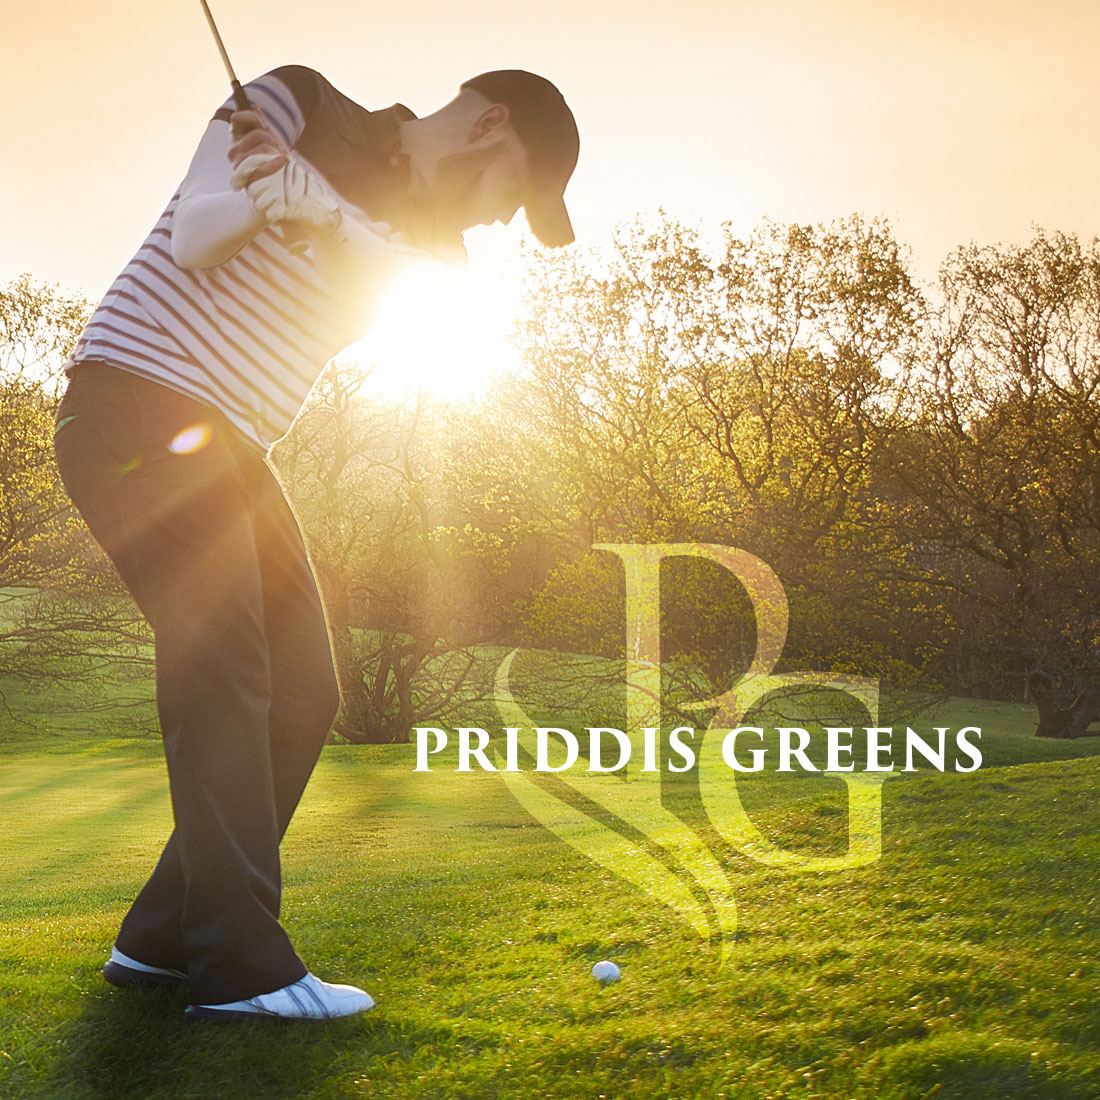 Priddis Greens logo on a golfer image